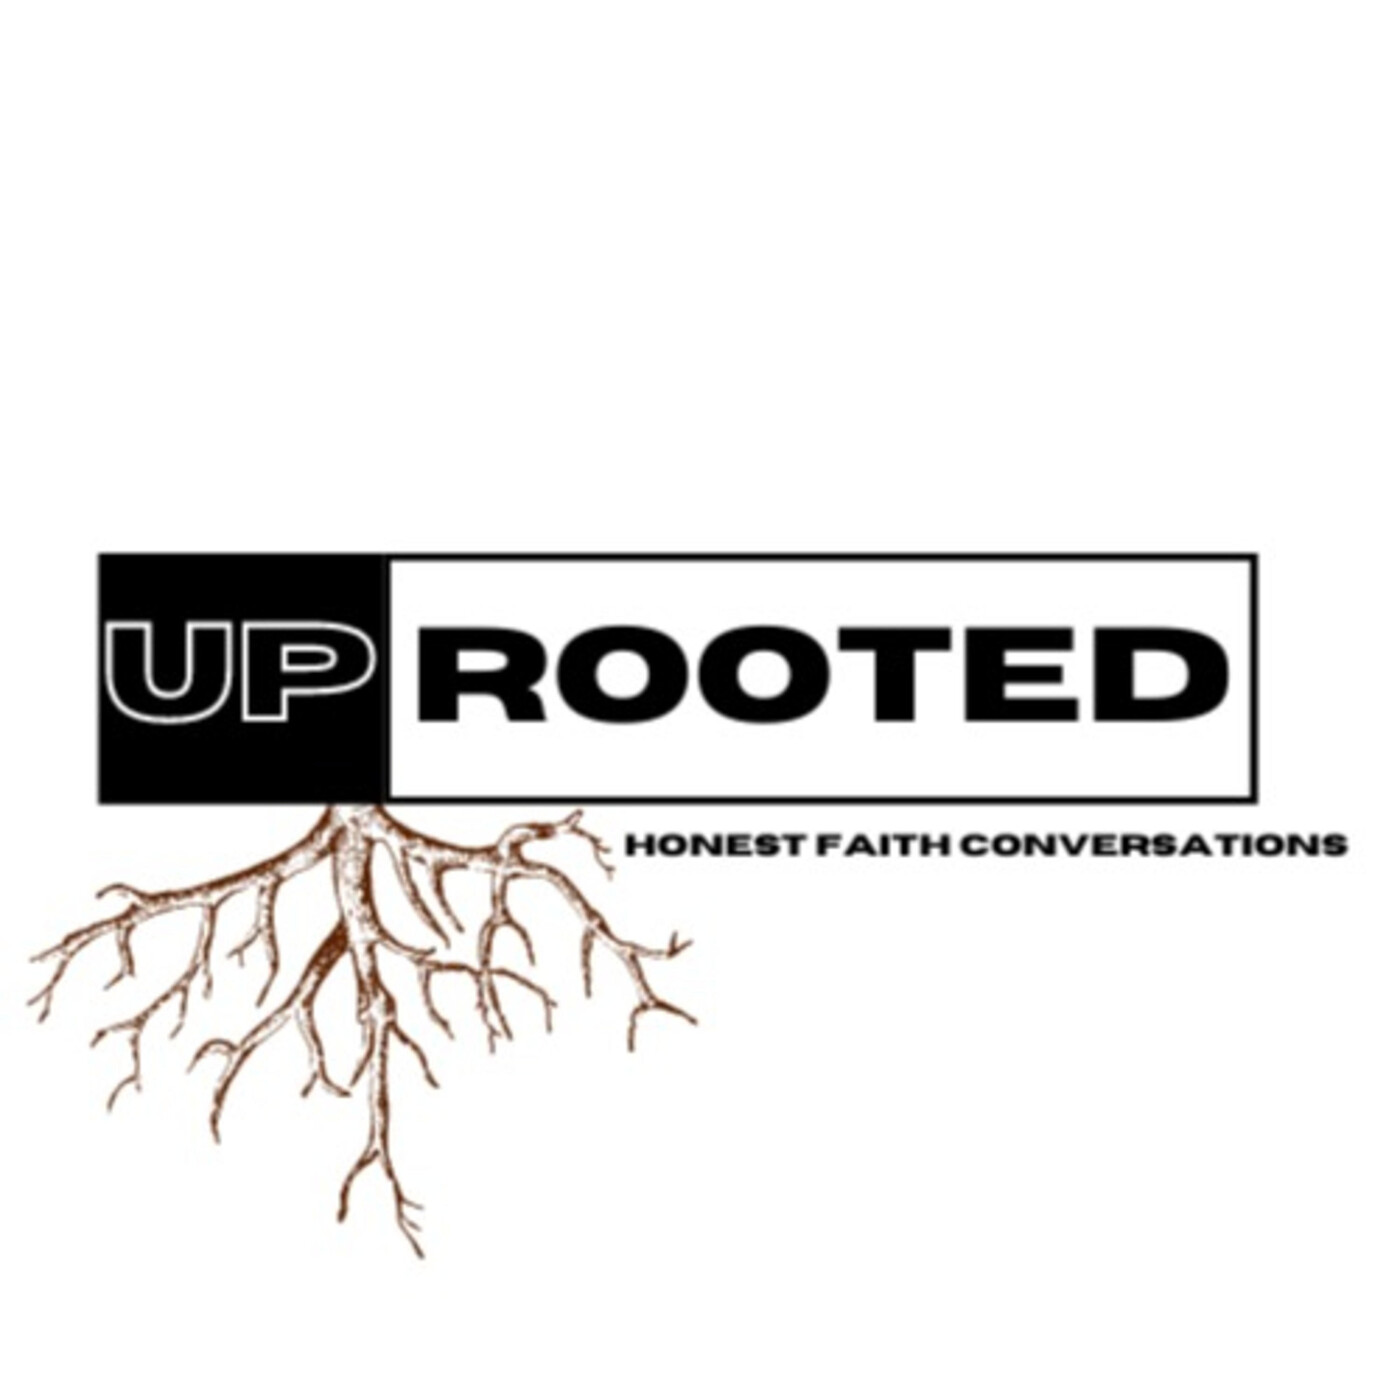 Episode #8: Jacob's Top 10 Most Influential Books for His Faith